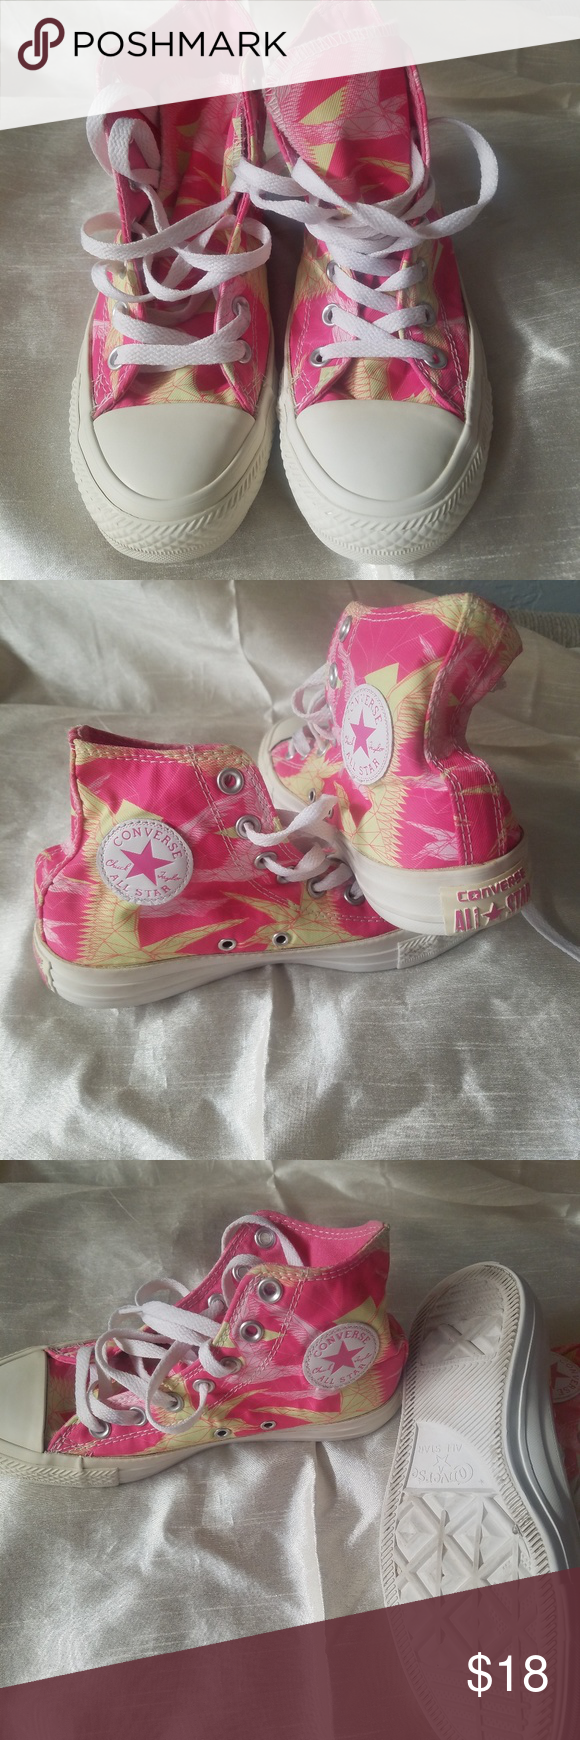 Pink Converse Size6 Nice Shoes In Good Condition You Will Love Very Clean Size 6